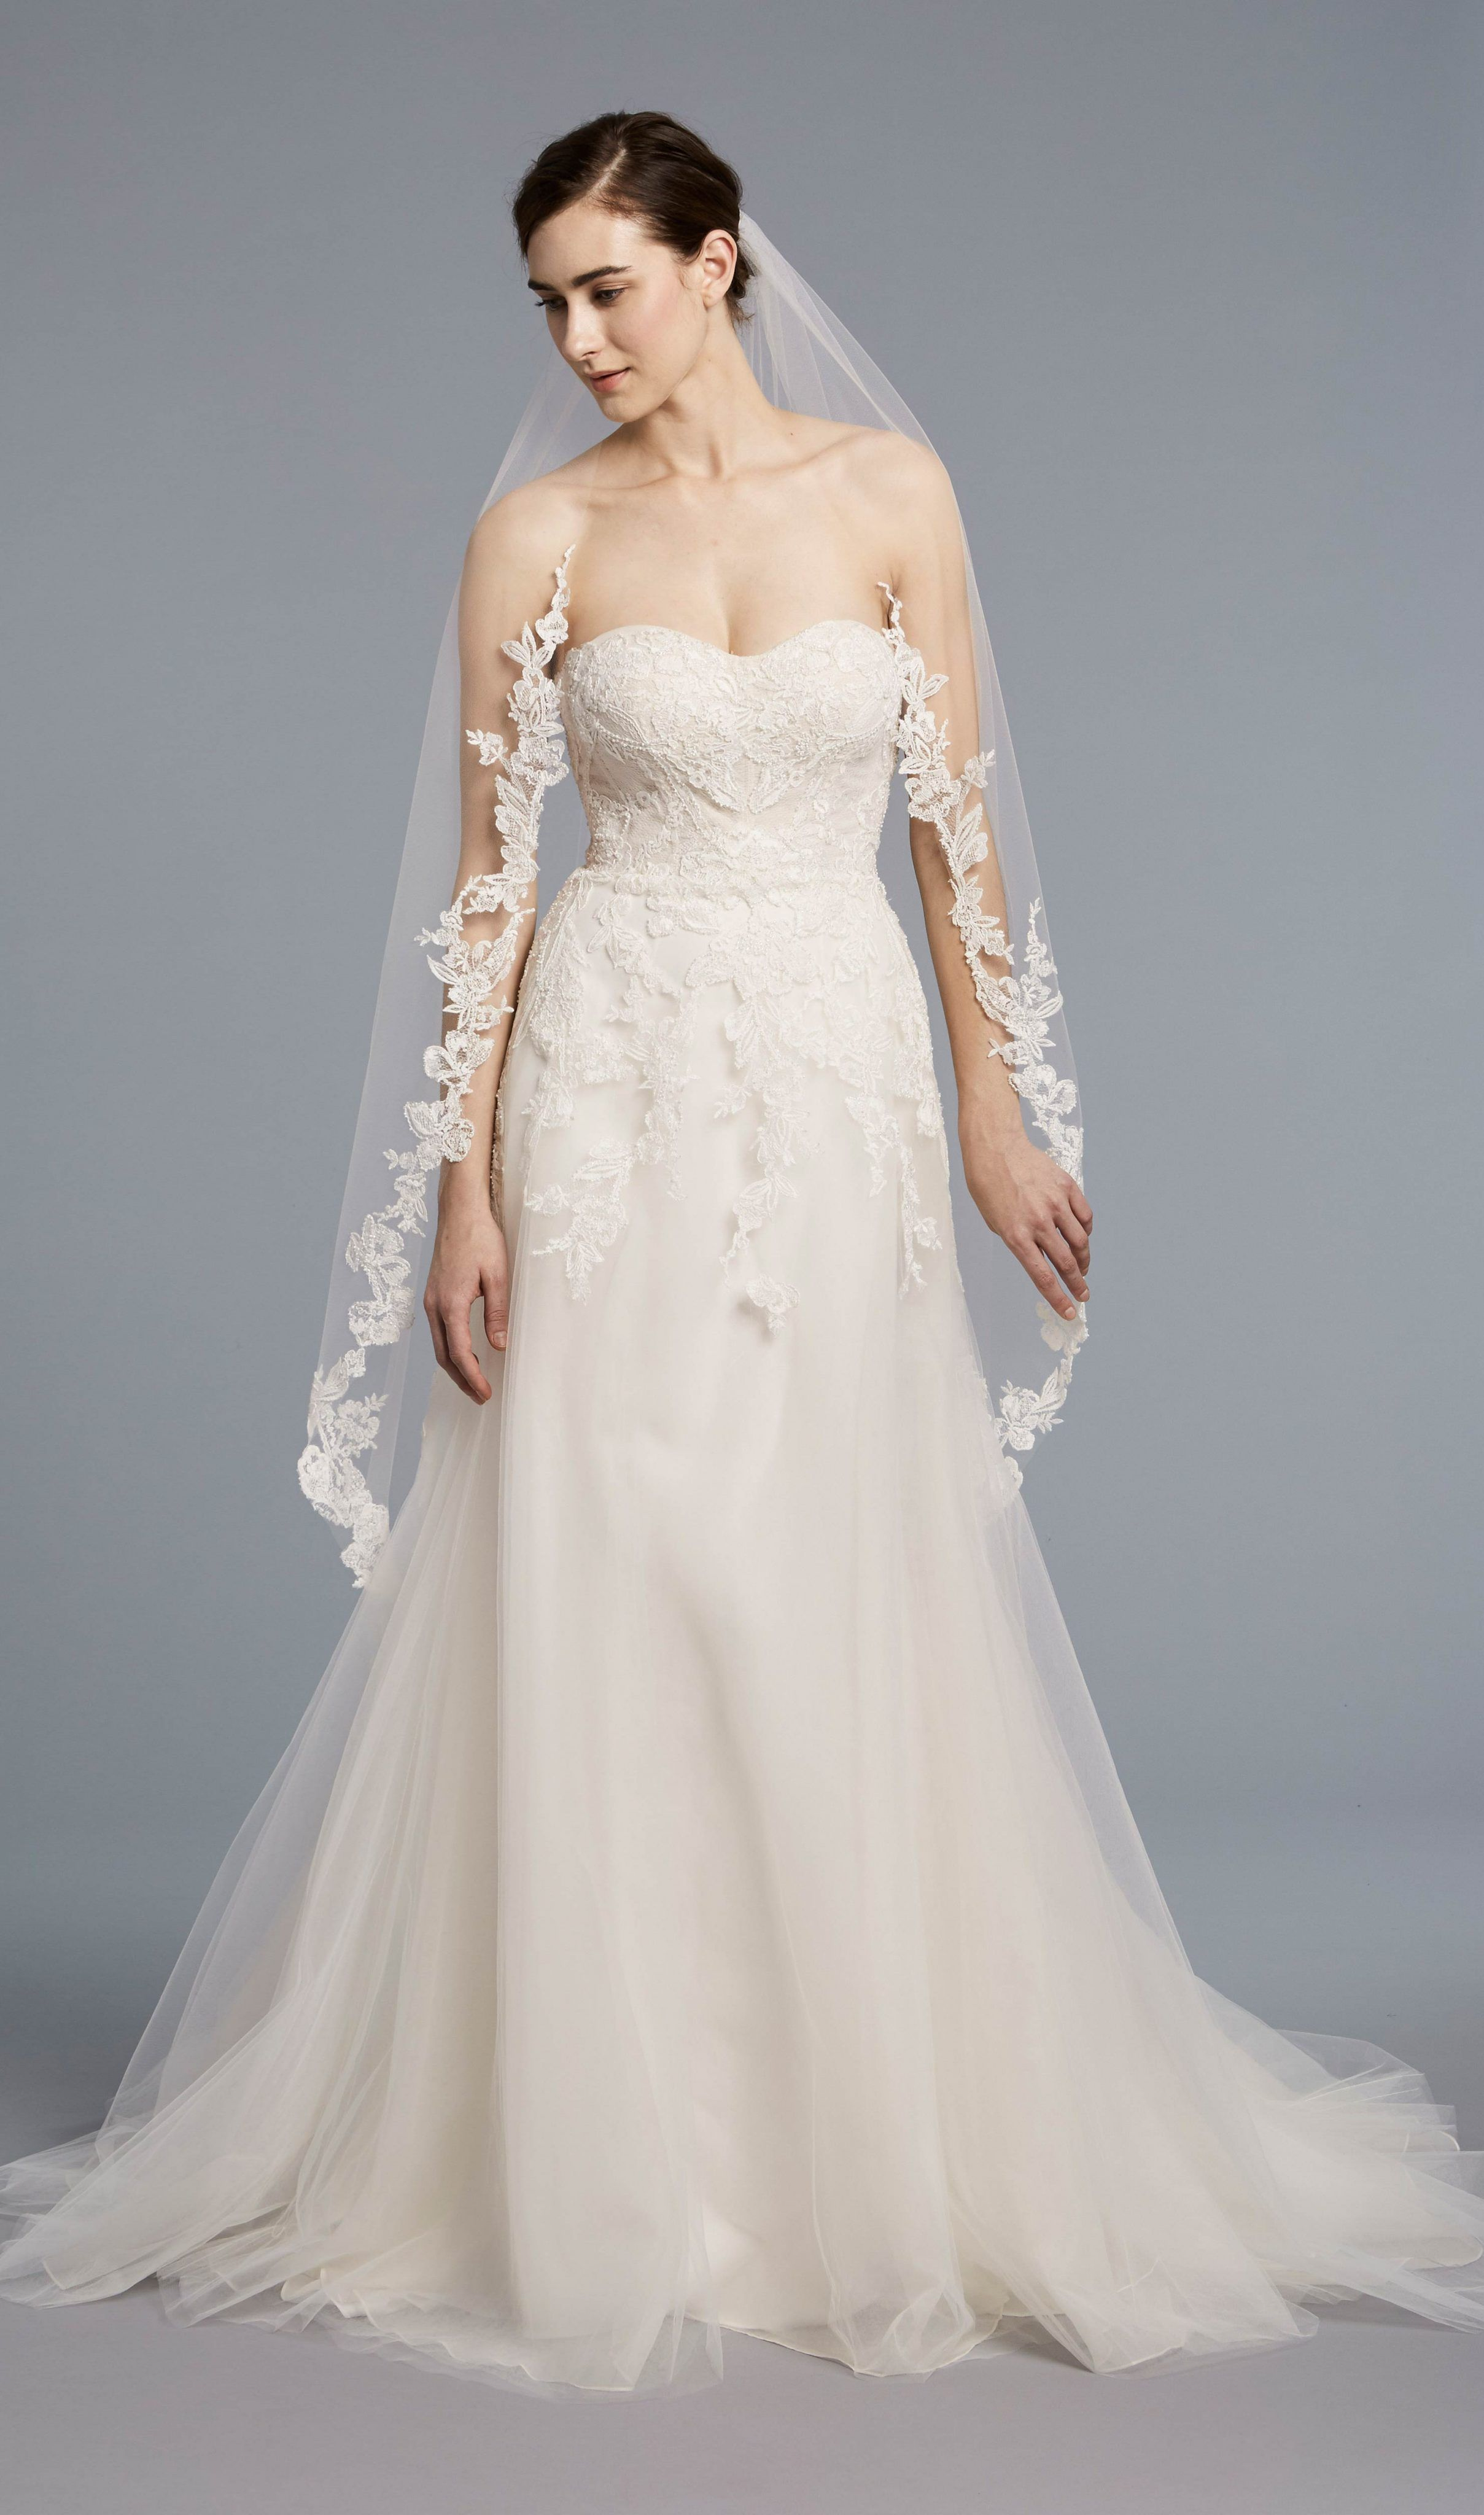 Woodland wedding dress  Strapless sweetheart Aline gown with embroidered bodice and tulle